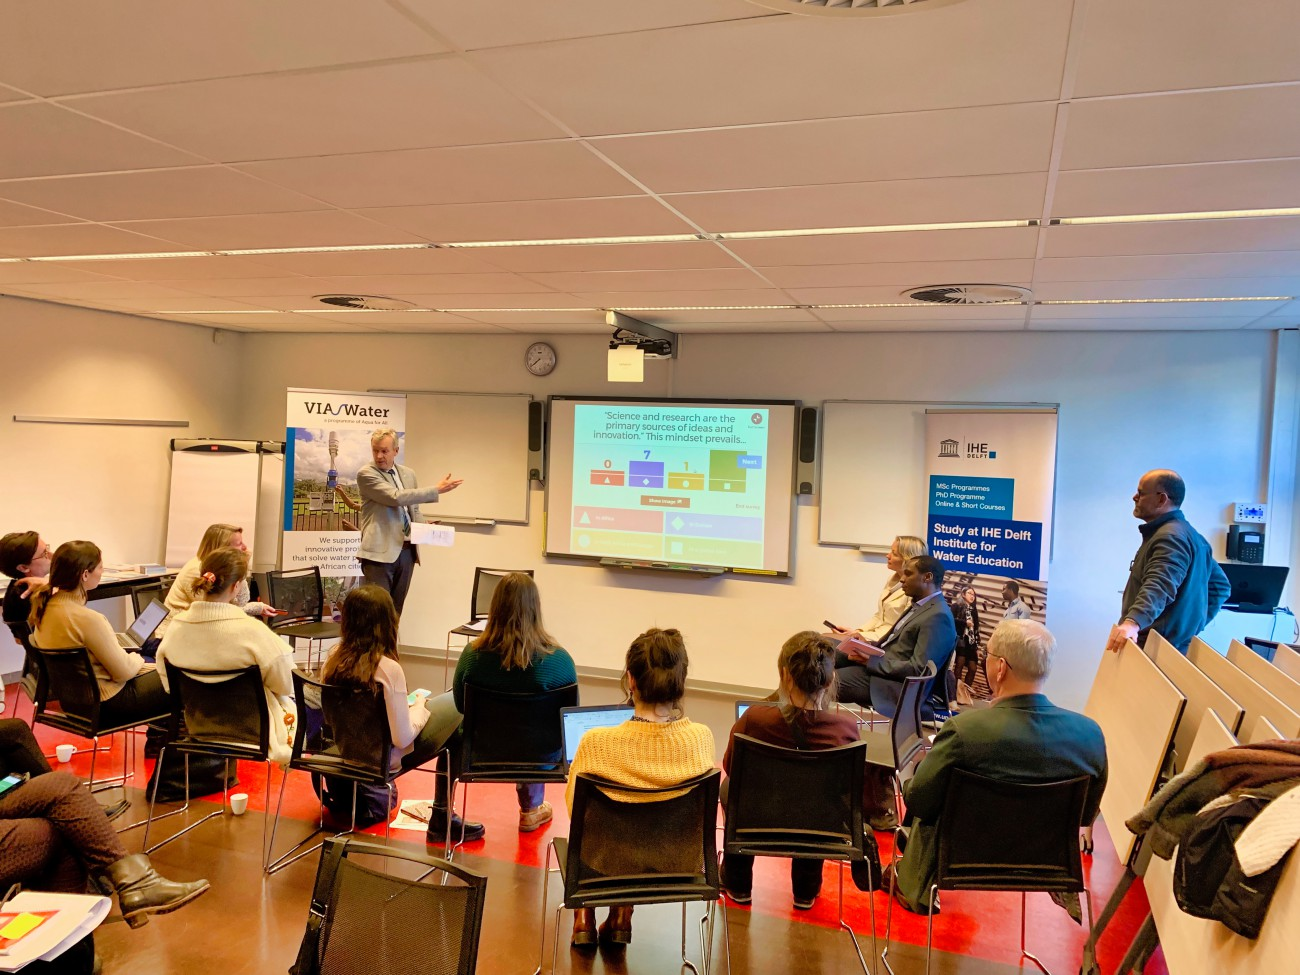 Plenary and Kahoot at the Workshop on Water Innovation in Africa at IHE Delft